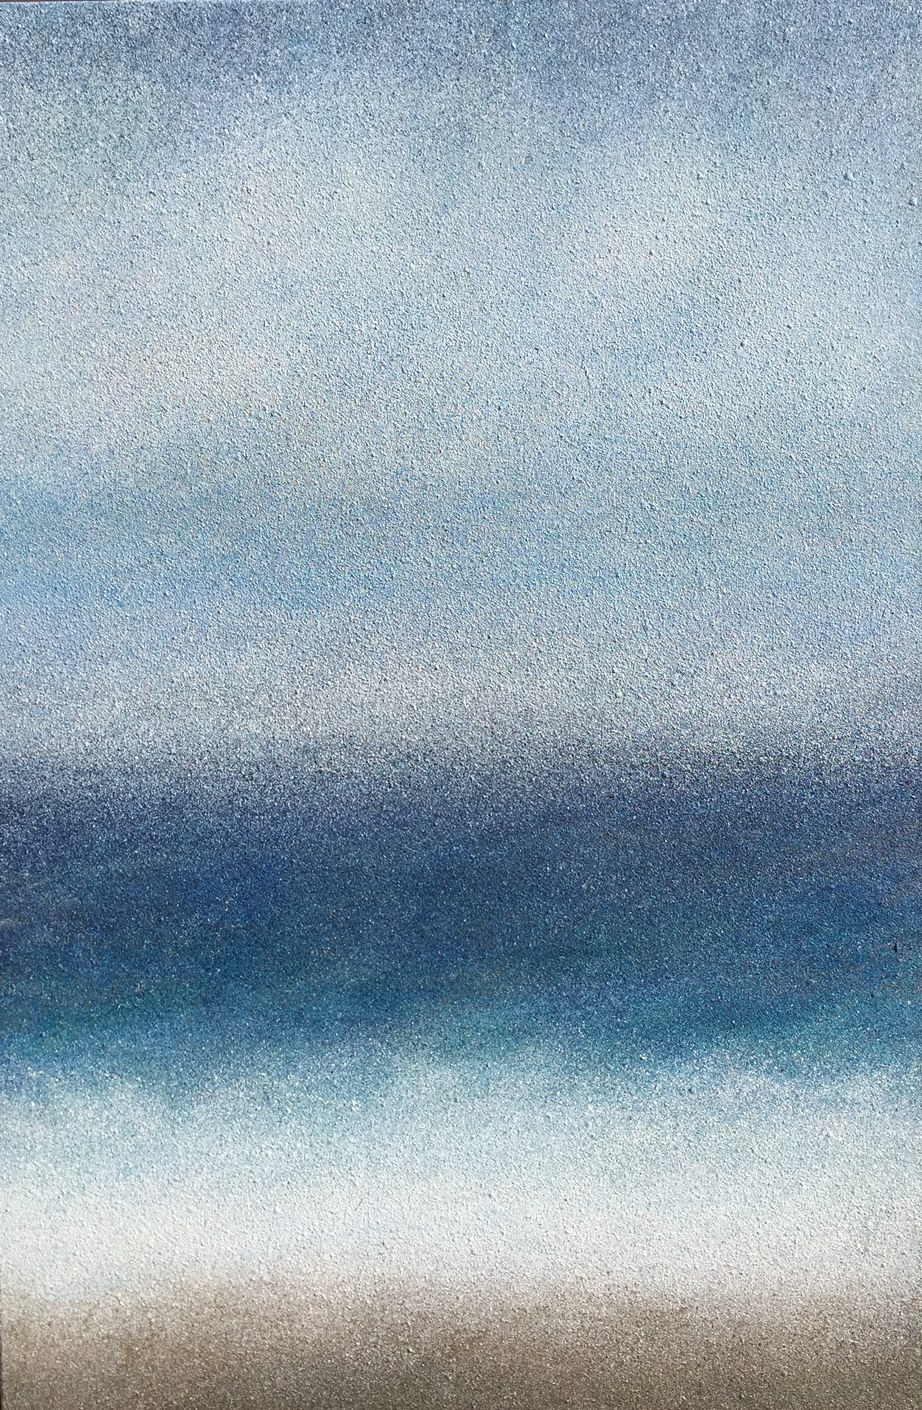 Sea and Fog